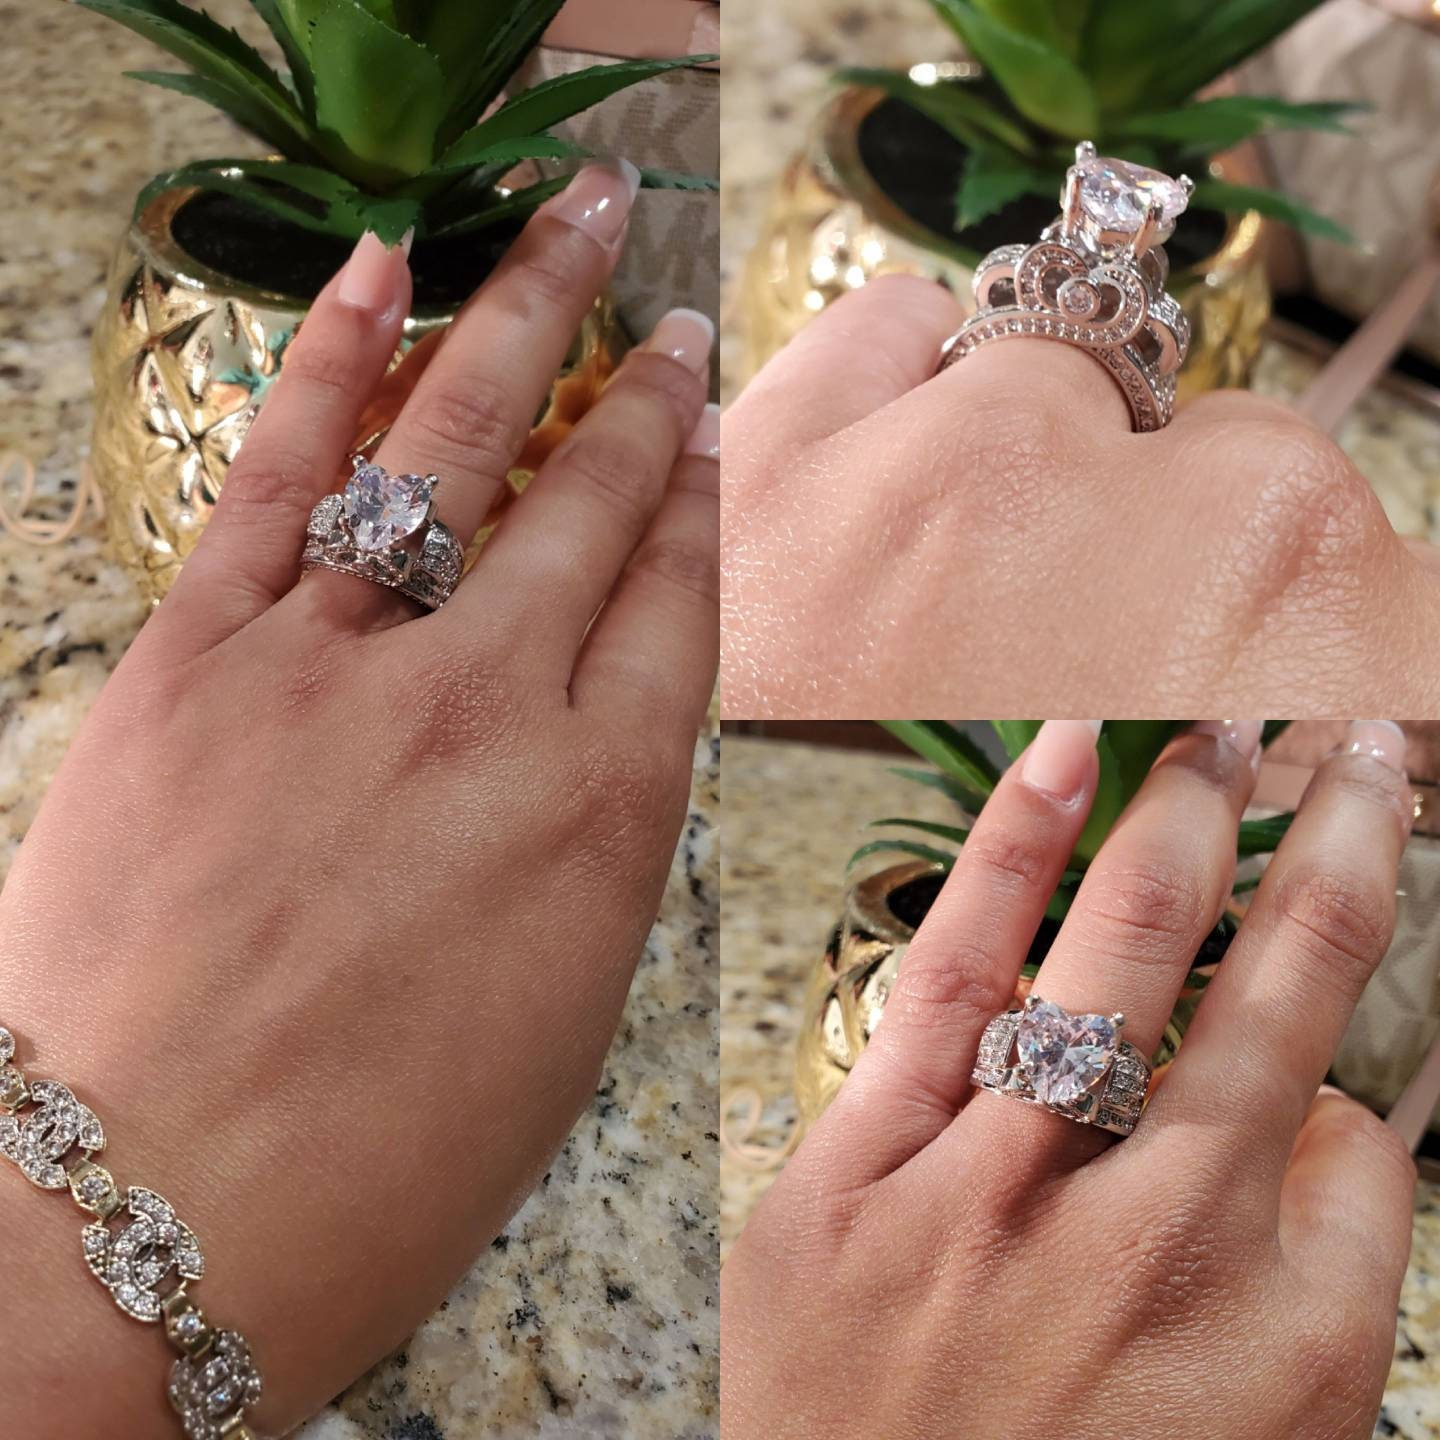 Xoxo hugs kisses Icy Heart rings Stackable rings, adjustable rings, cluster rings, dainty stackable rings, open ring, floral ring engagement